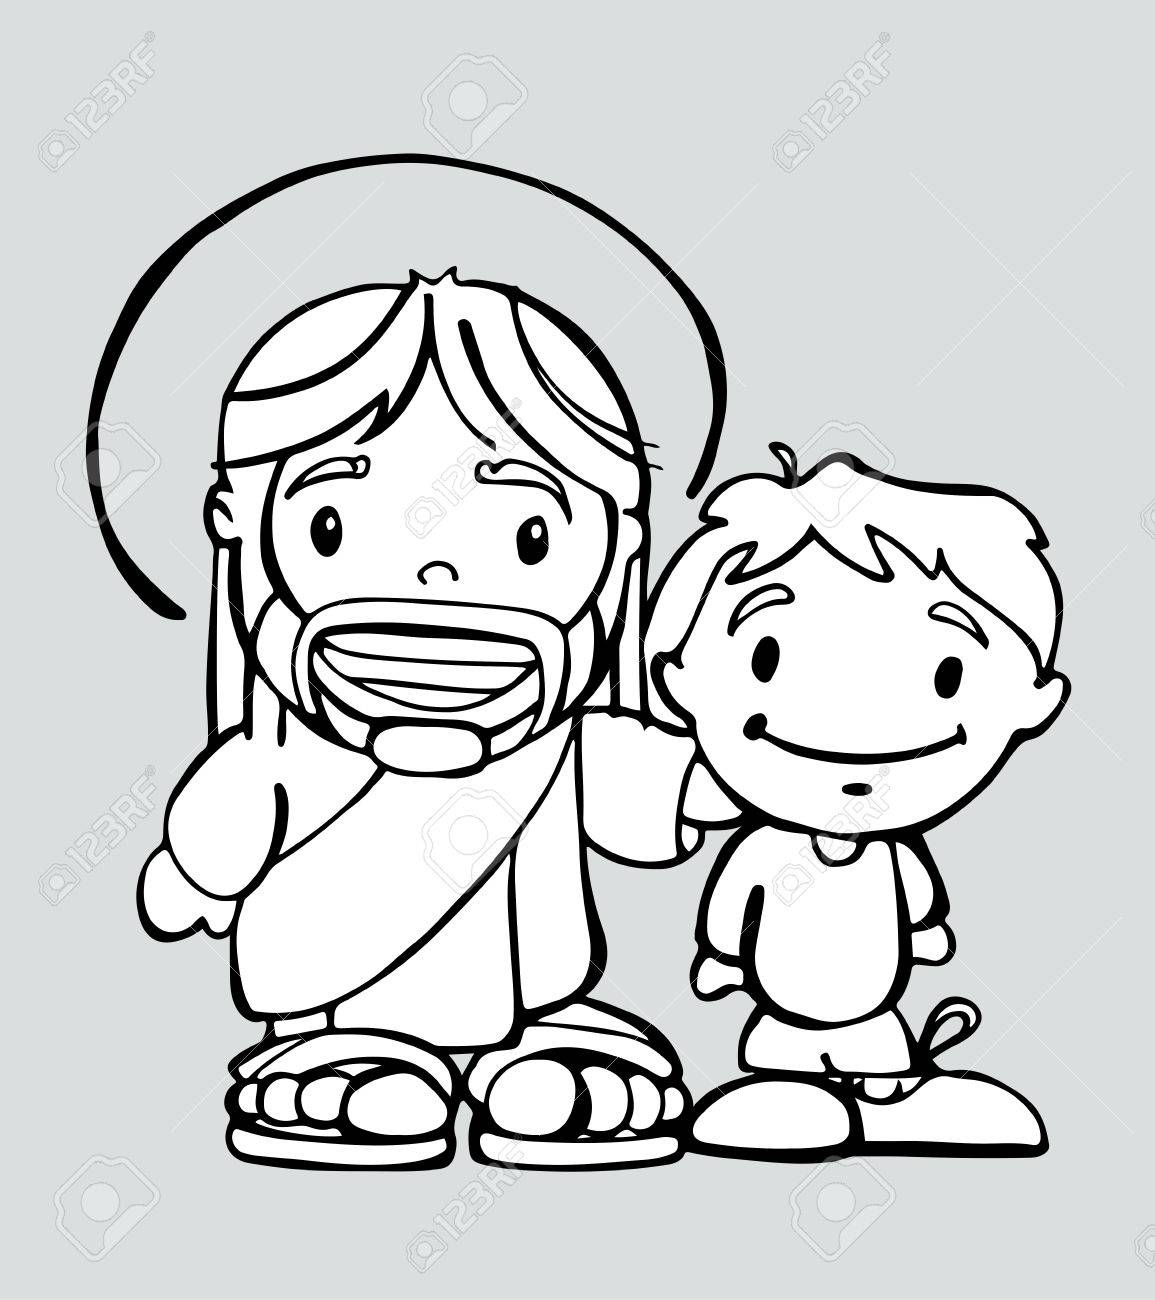 hand drawn vector illustration or drawing of a cartoon of jesus